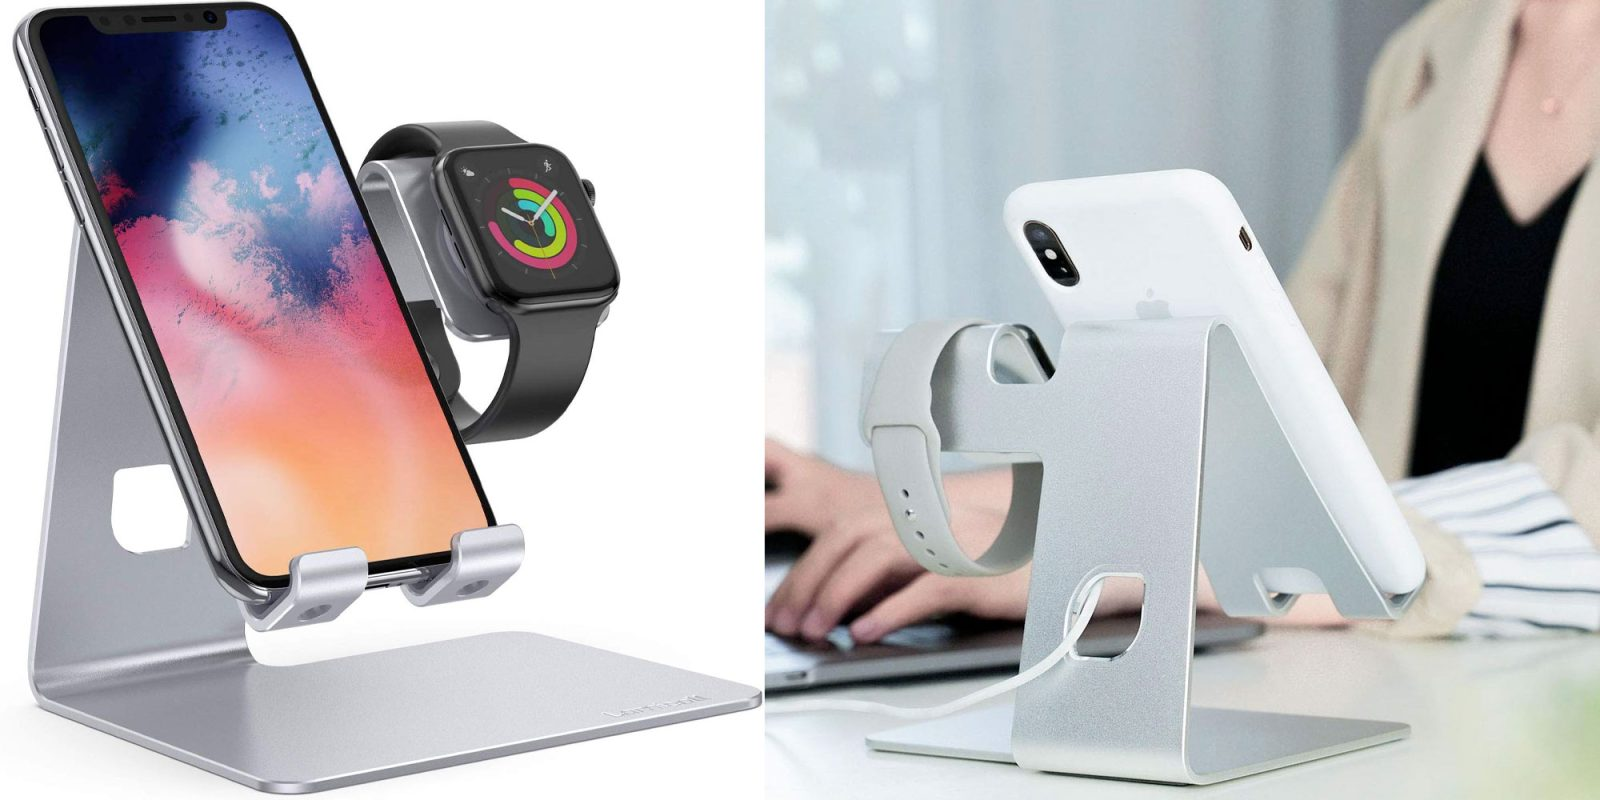 This $9.50 iPhone and Apple Watch dock can charge and display your devices